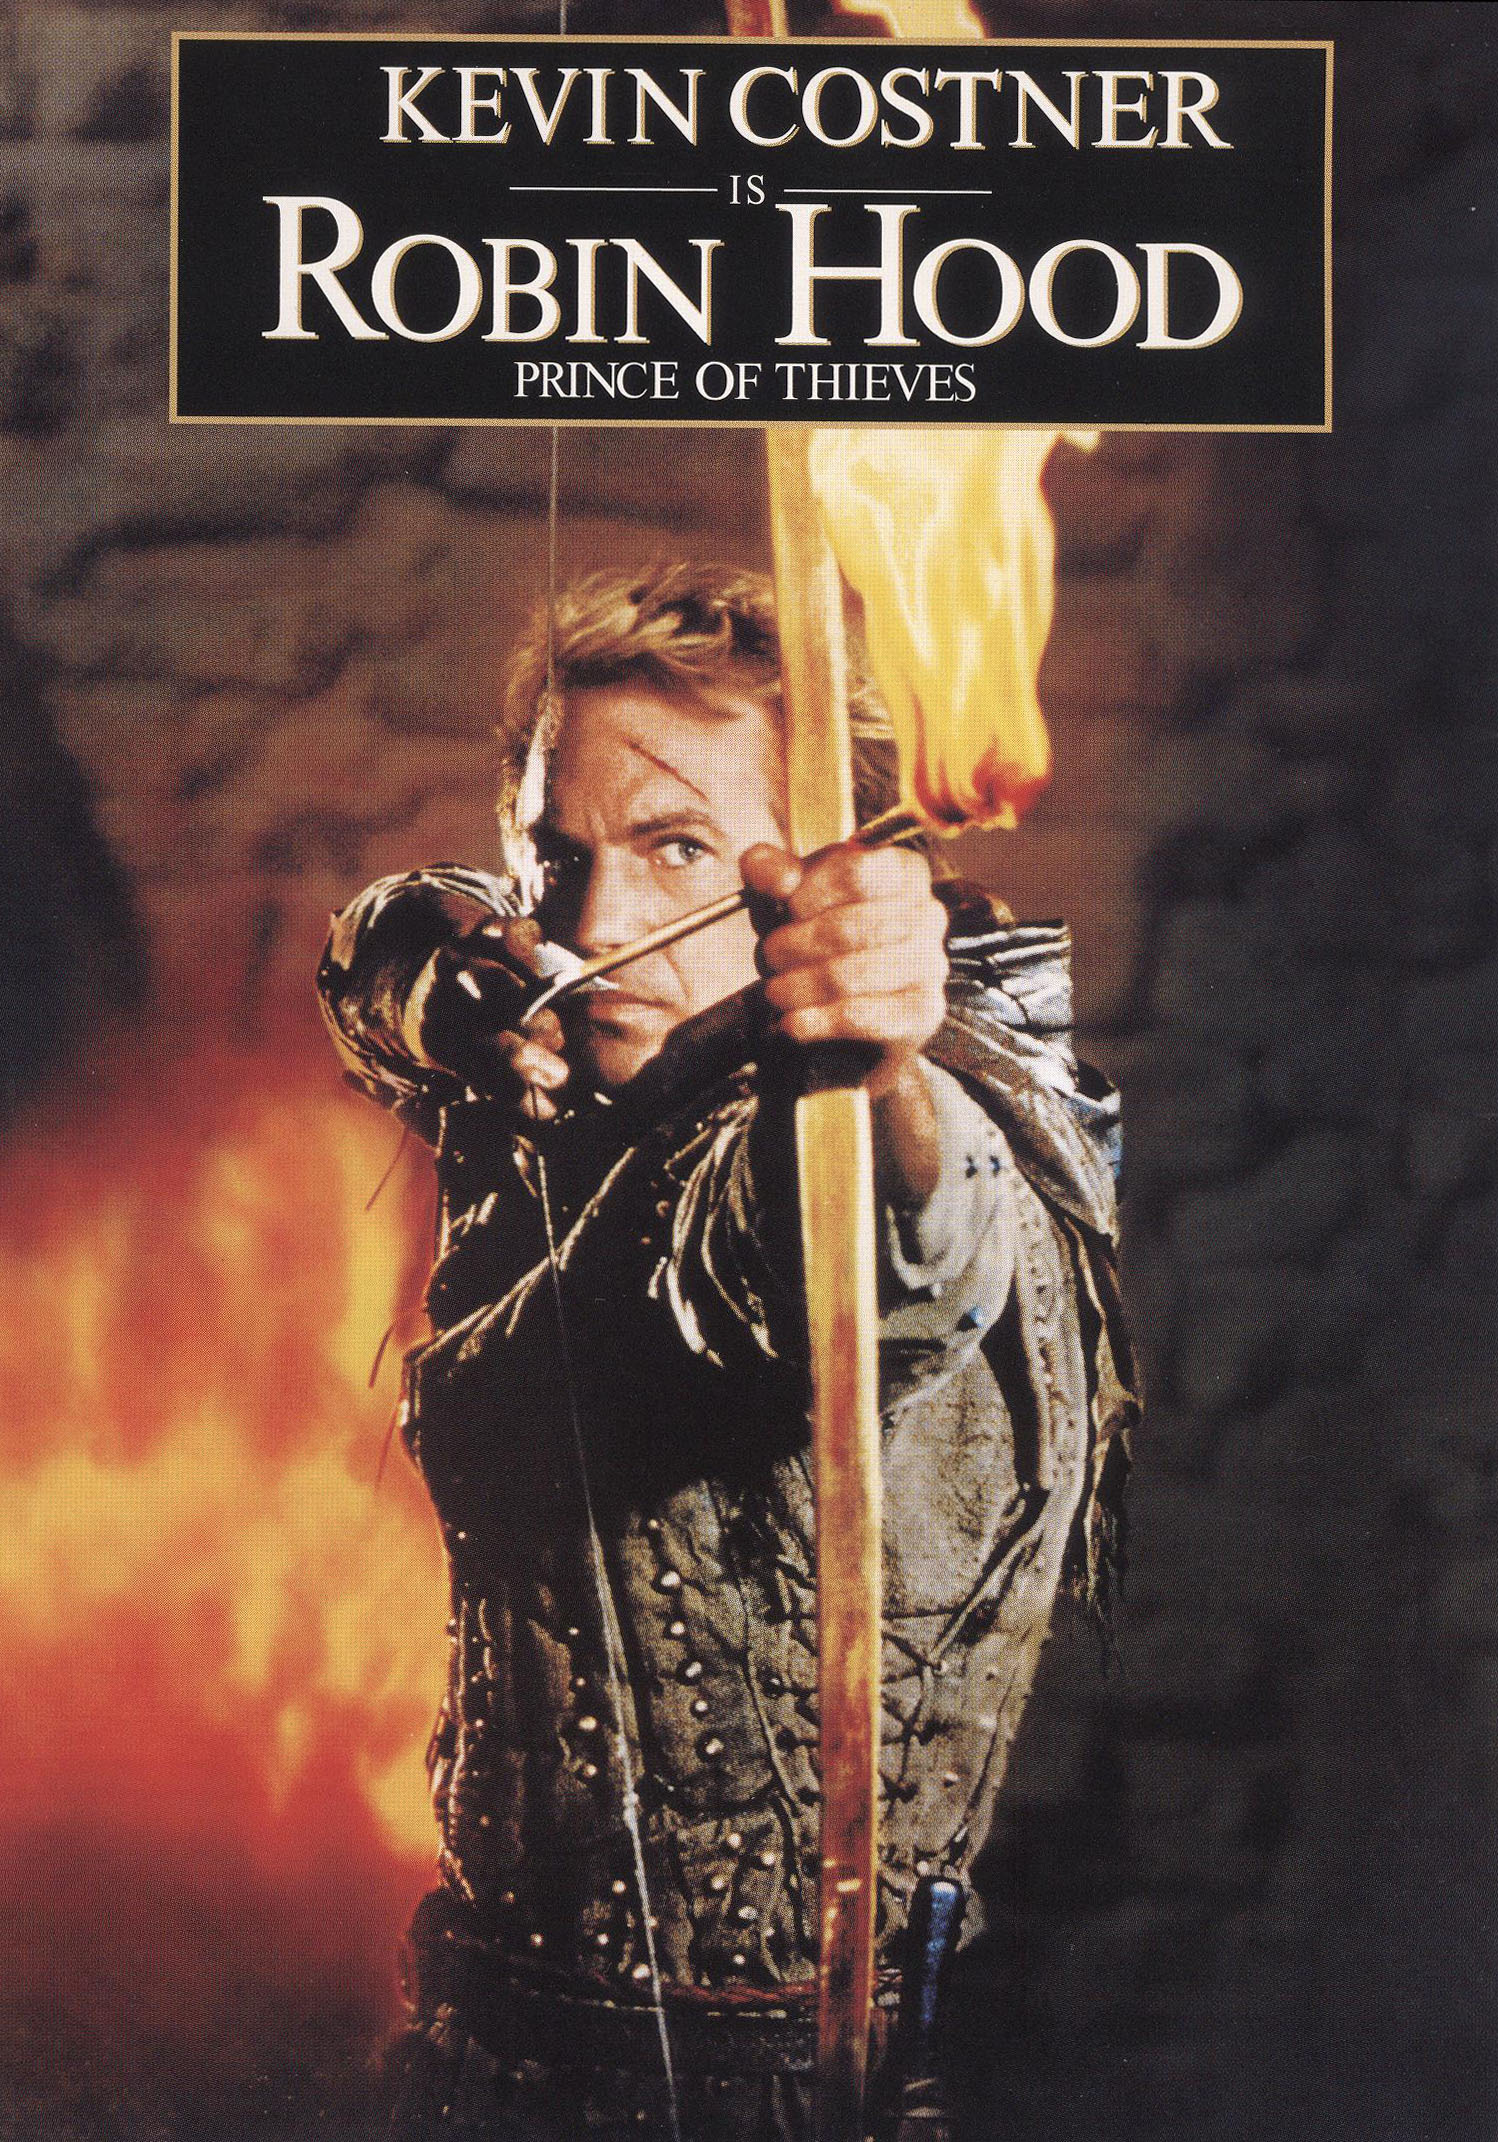 Commentary. Robin Hood: Prince of Thieves